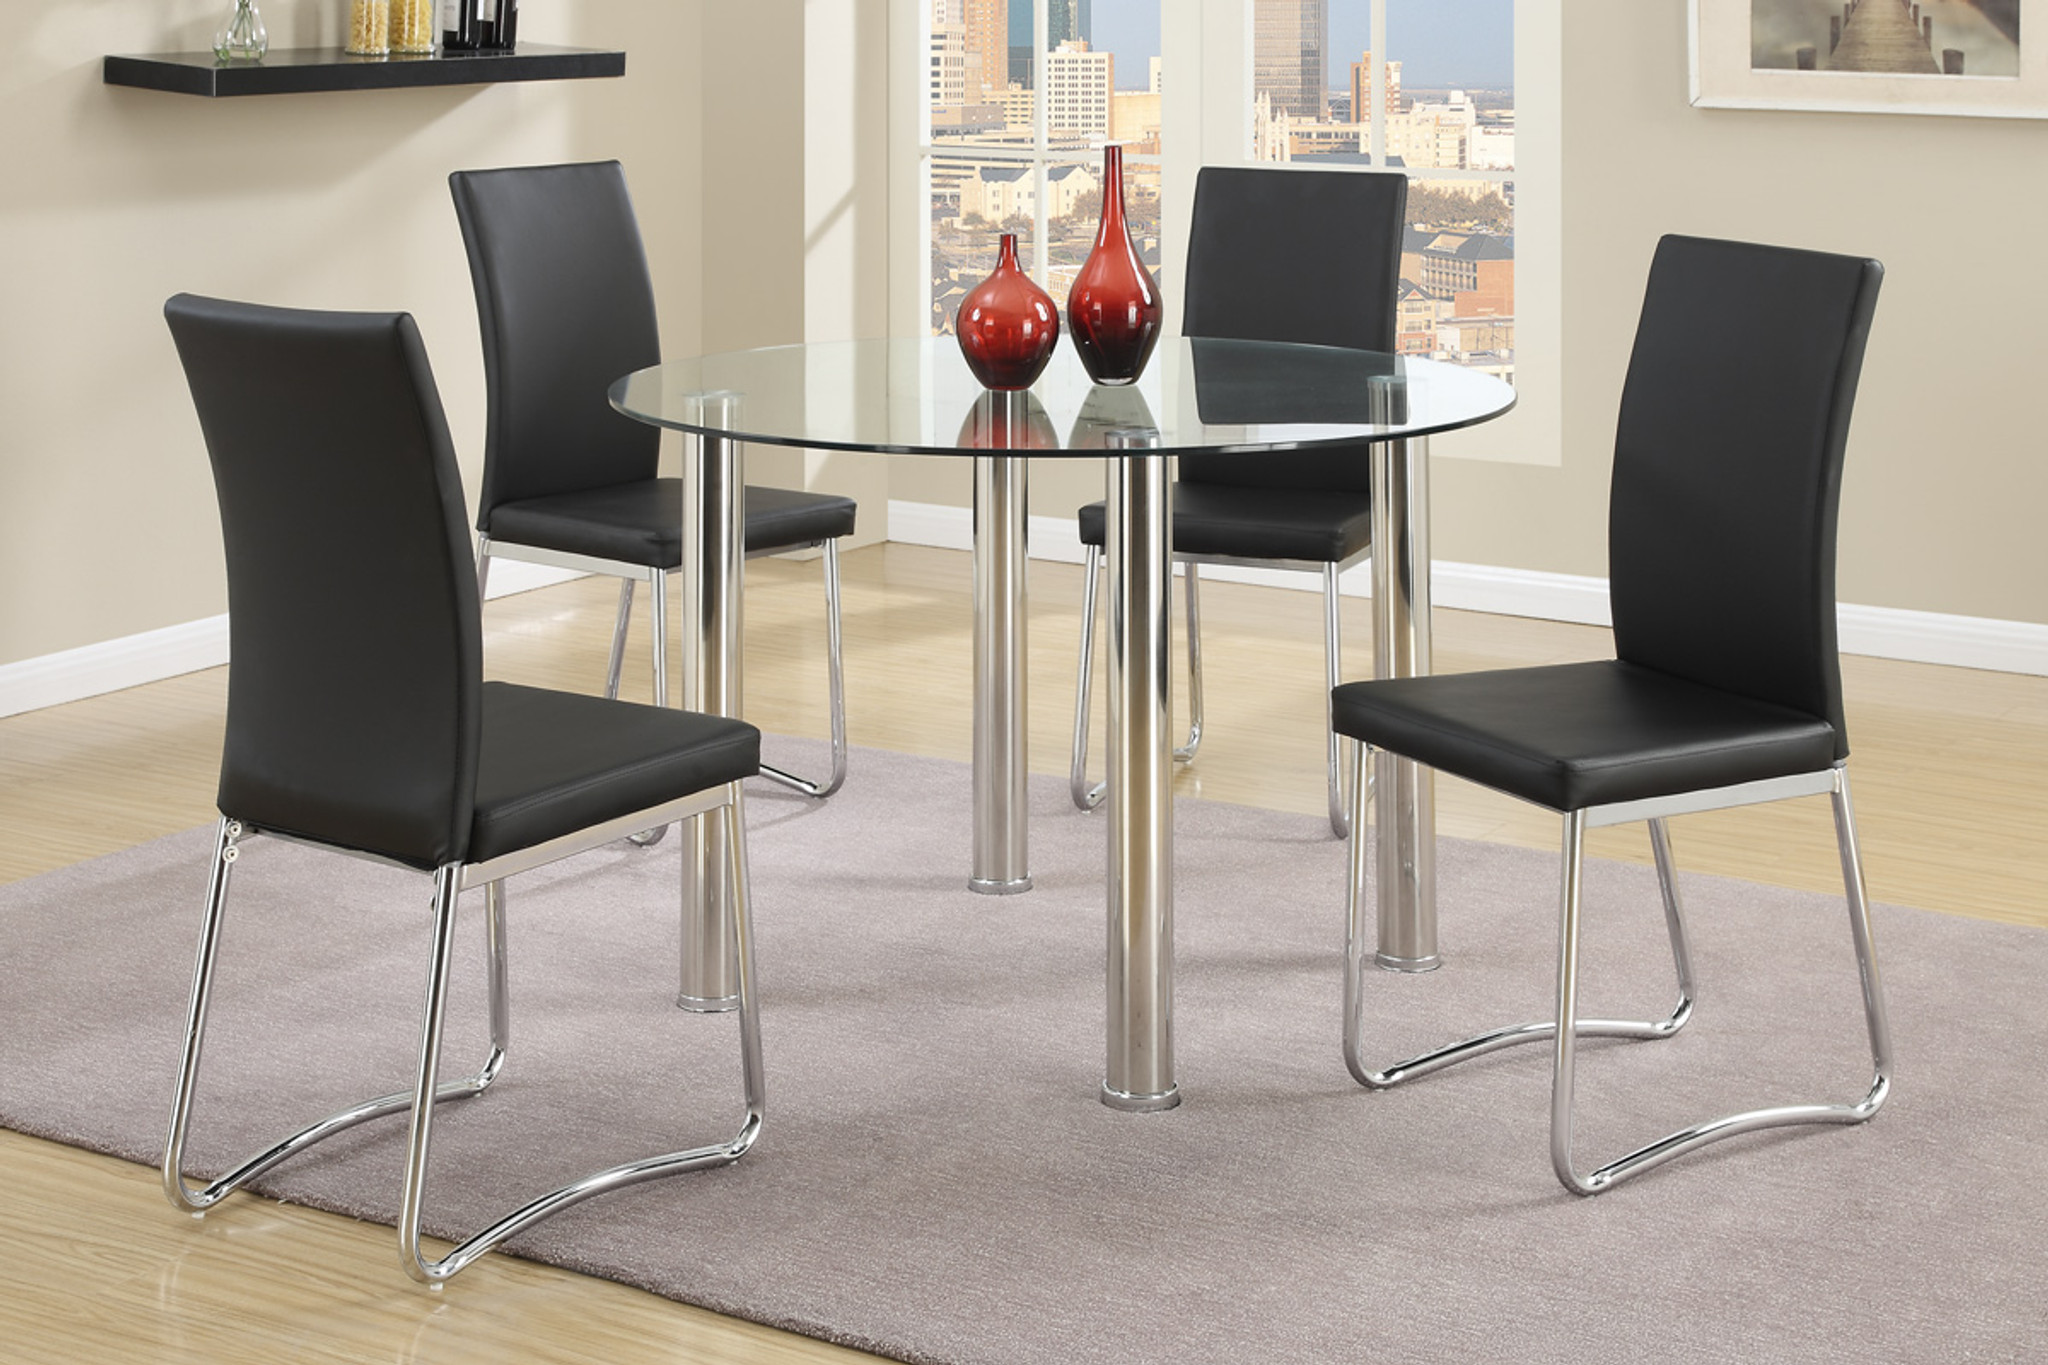 Phenomenal 5 Pcs Modern Round Dining Table Set In Black Gmtry Best Dining Table And Chair Ideas Images Gmtryco